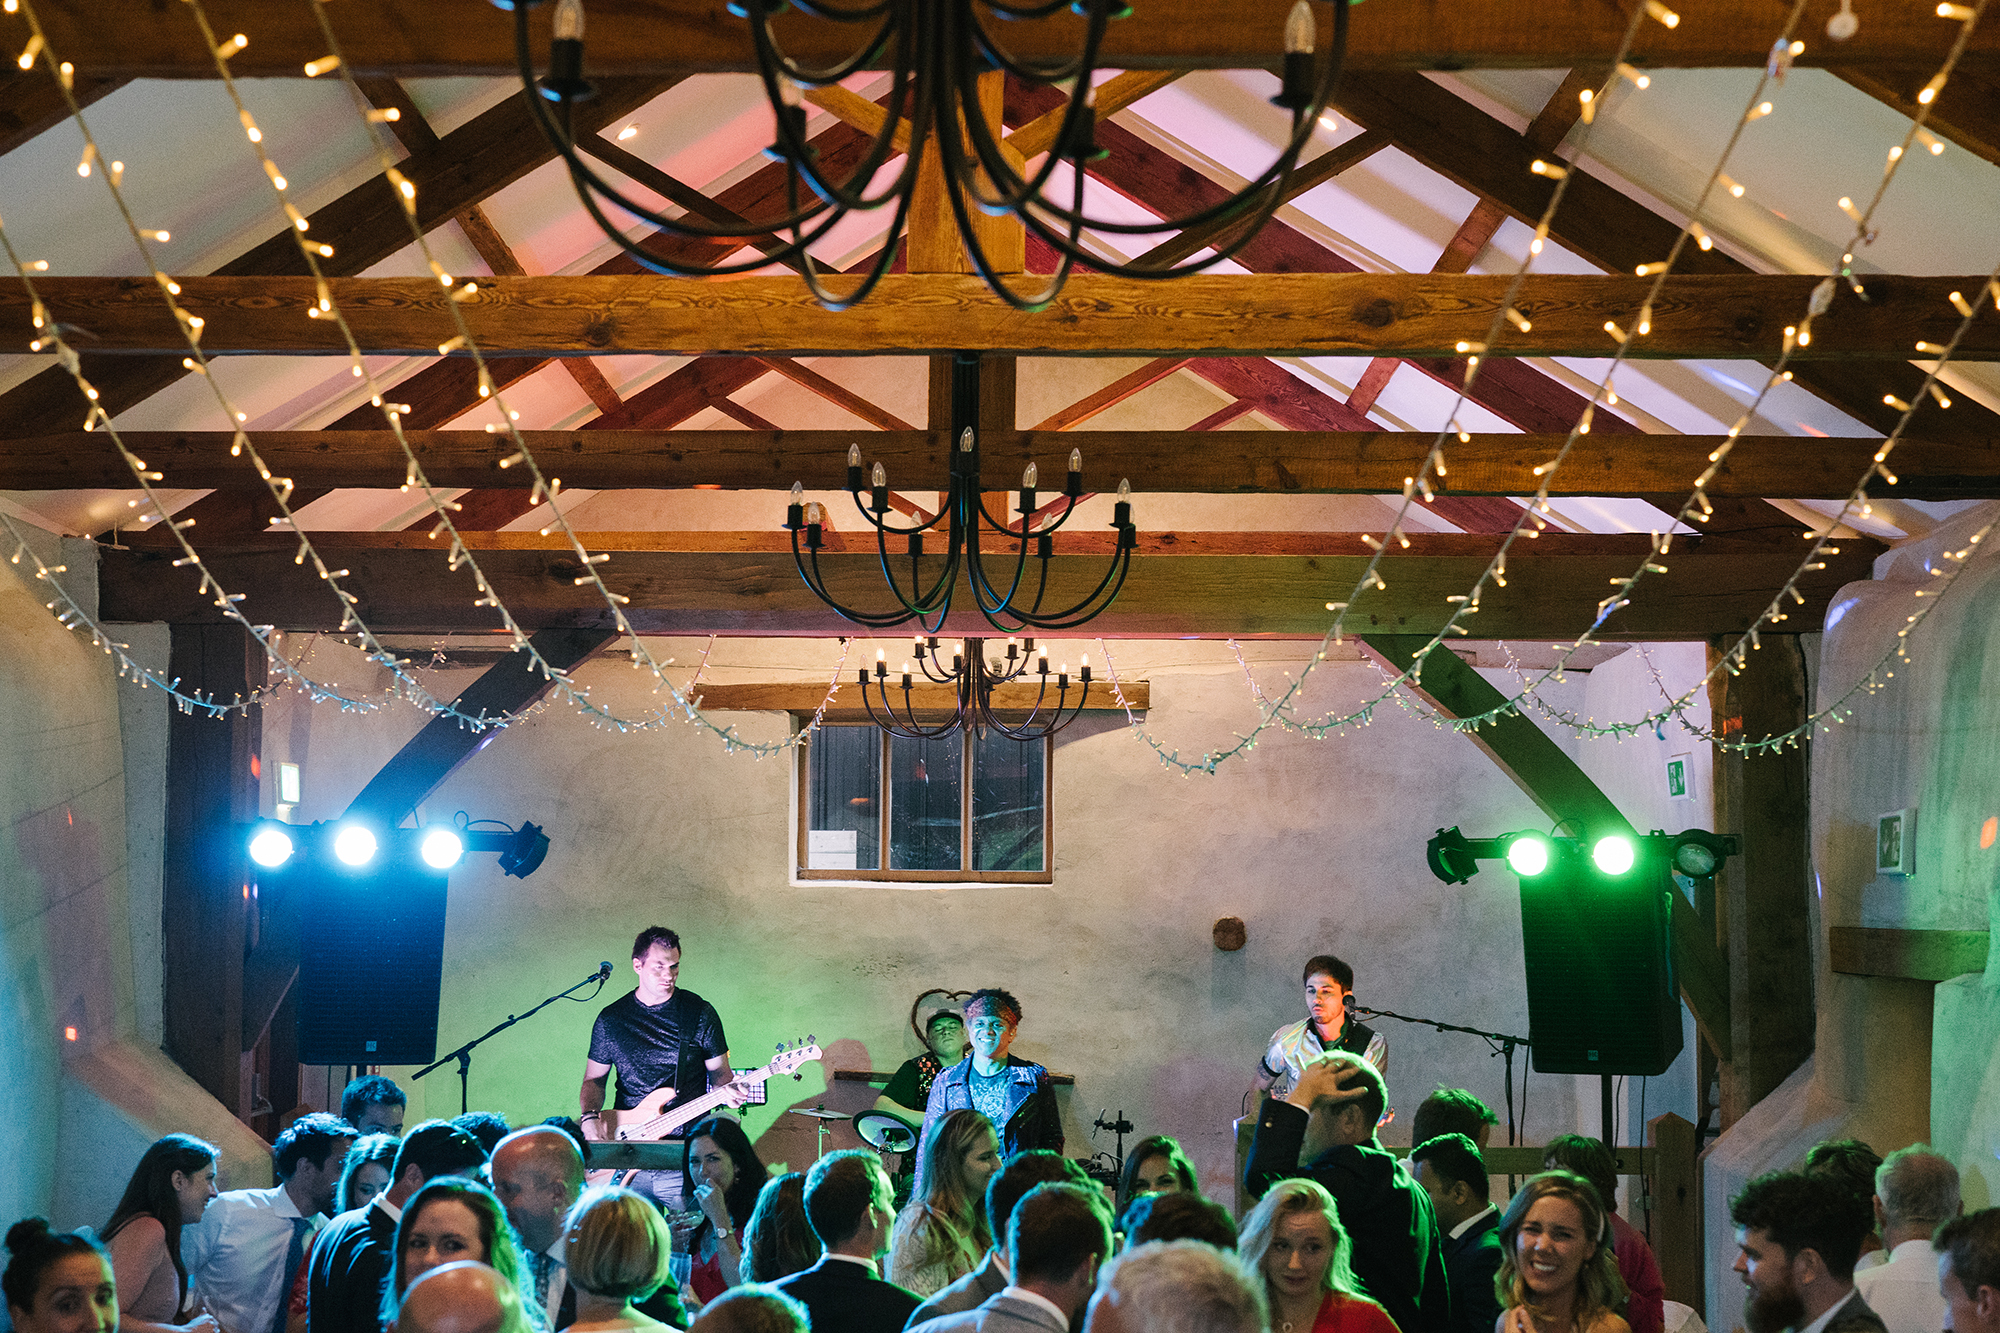 Live band plays to a packed crowd in the Cider Barn at Upton Barn and Walled Garden